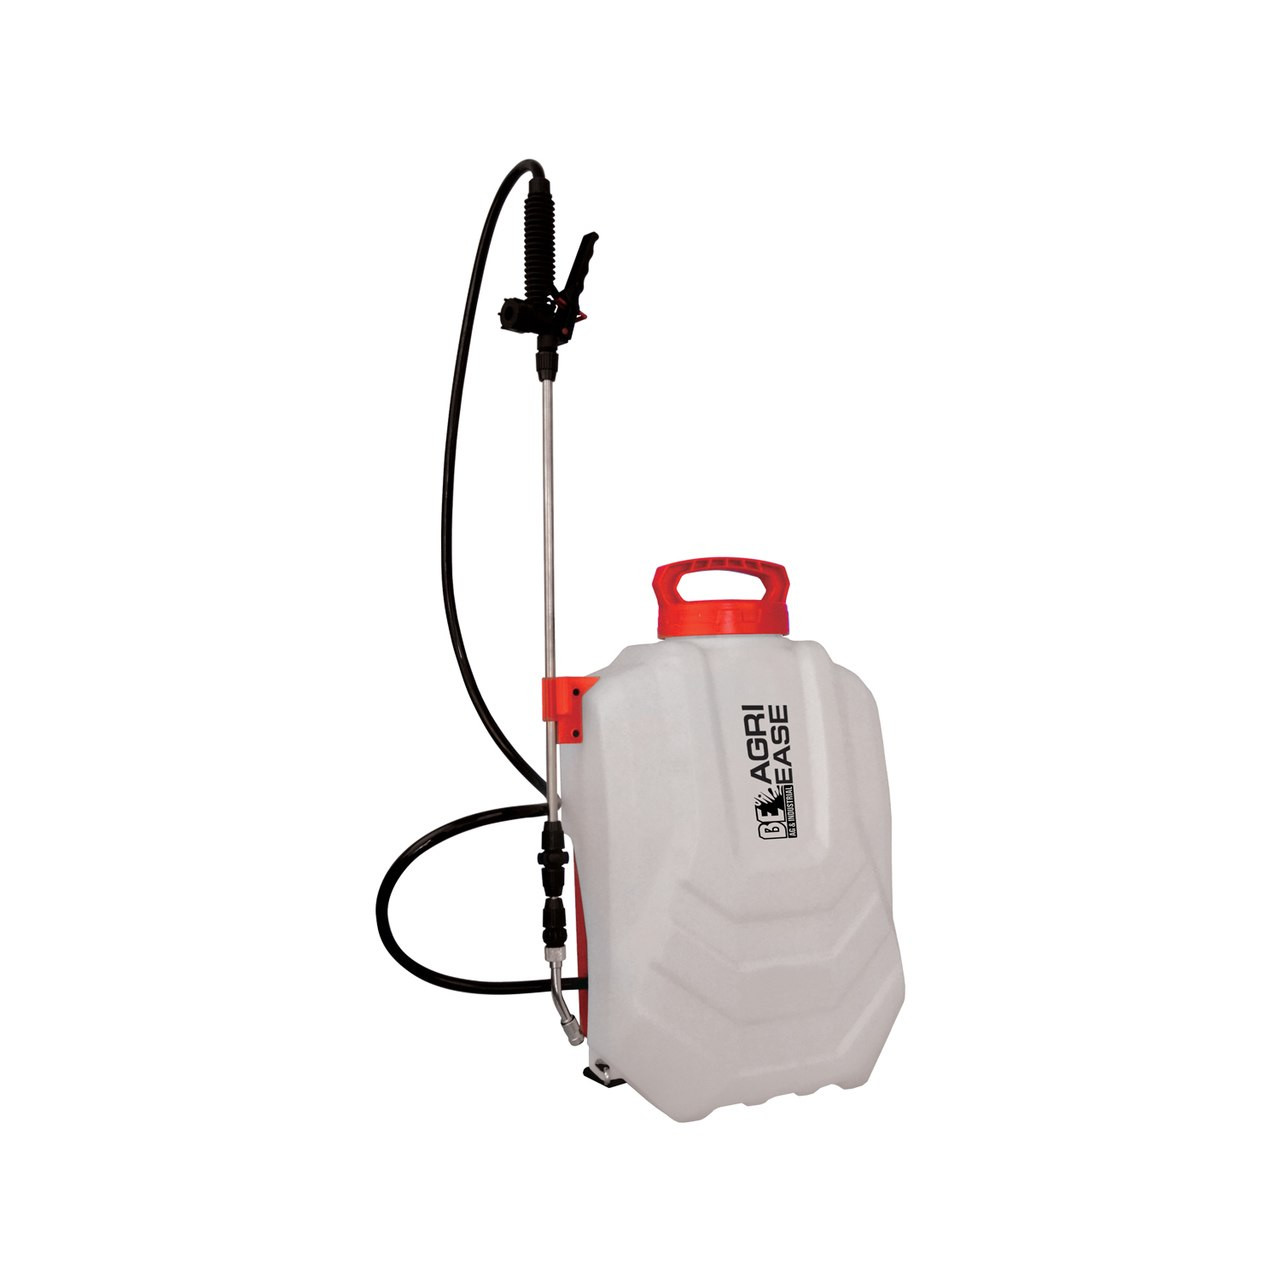 Agri Ease Lithium-Ion 4 Gallon Backpack Sprayer | 90 709 015